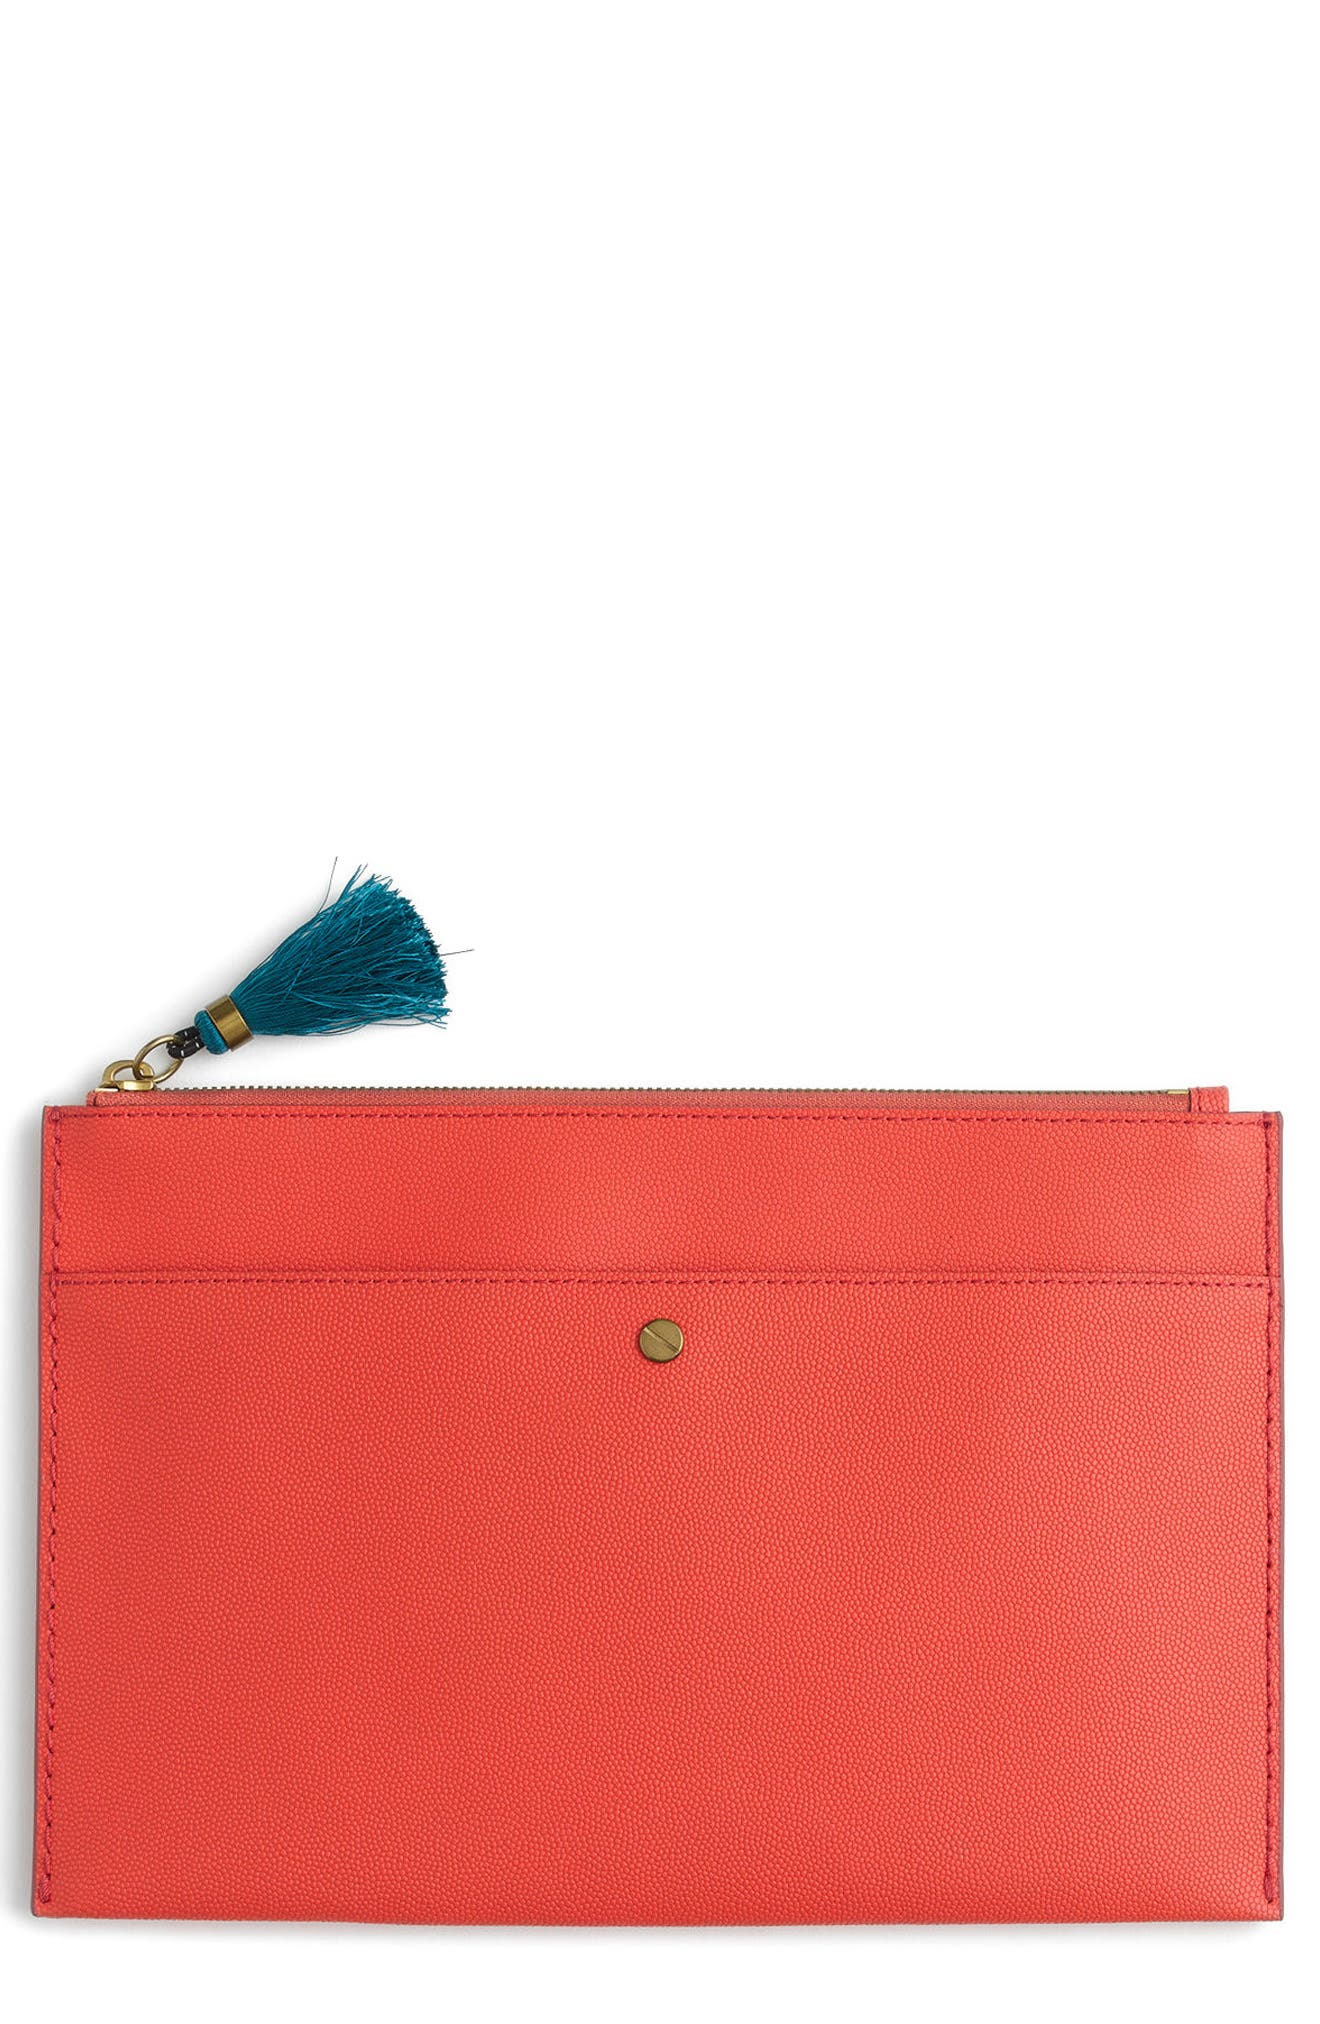 J. Crew Large Leather Zip Pouch